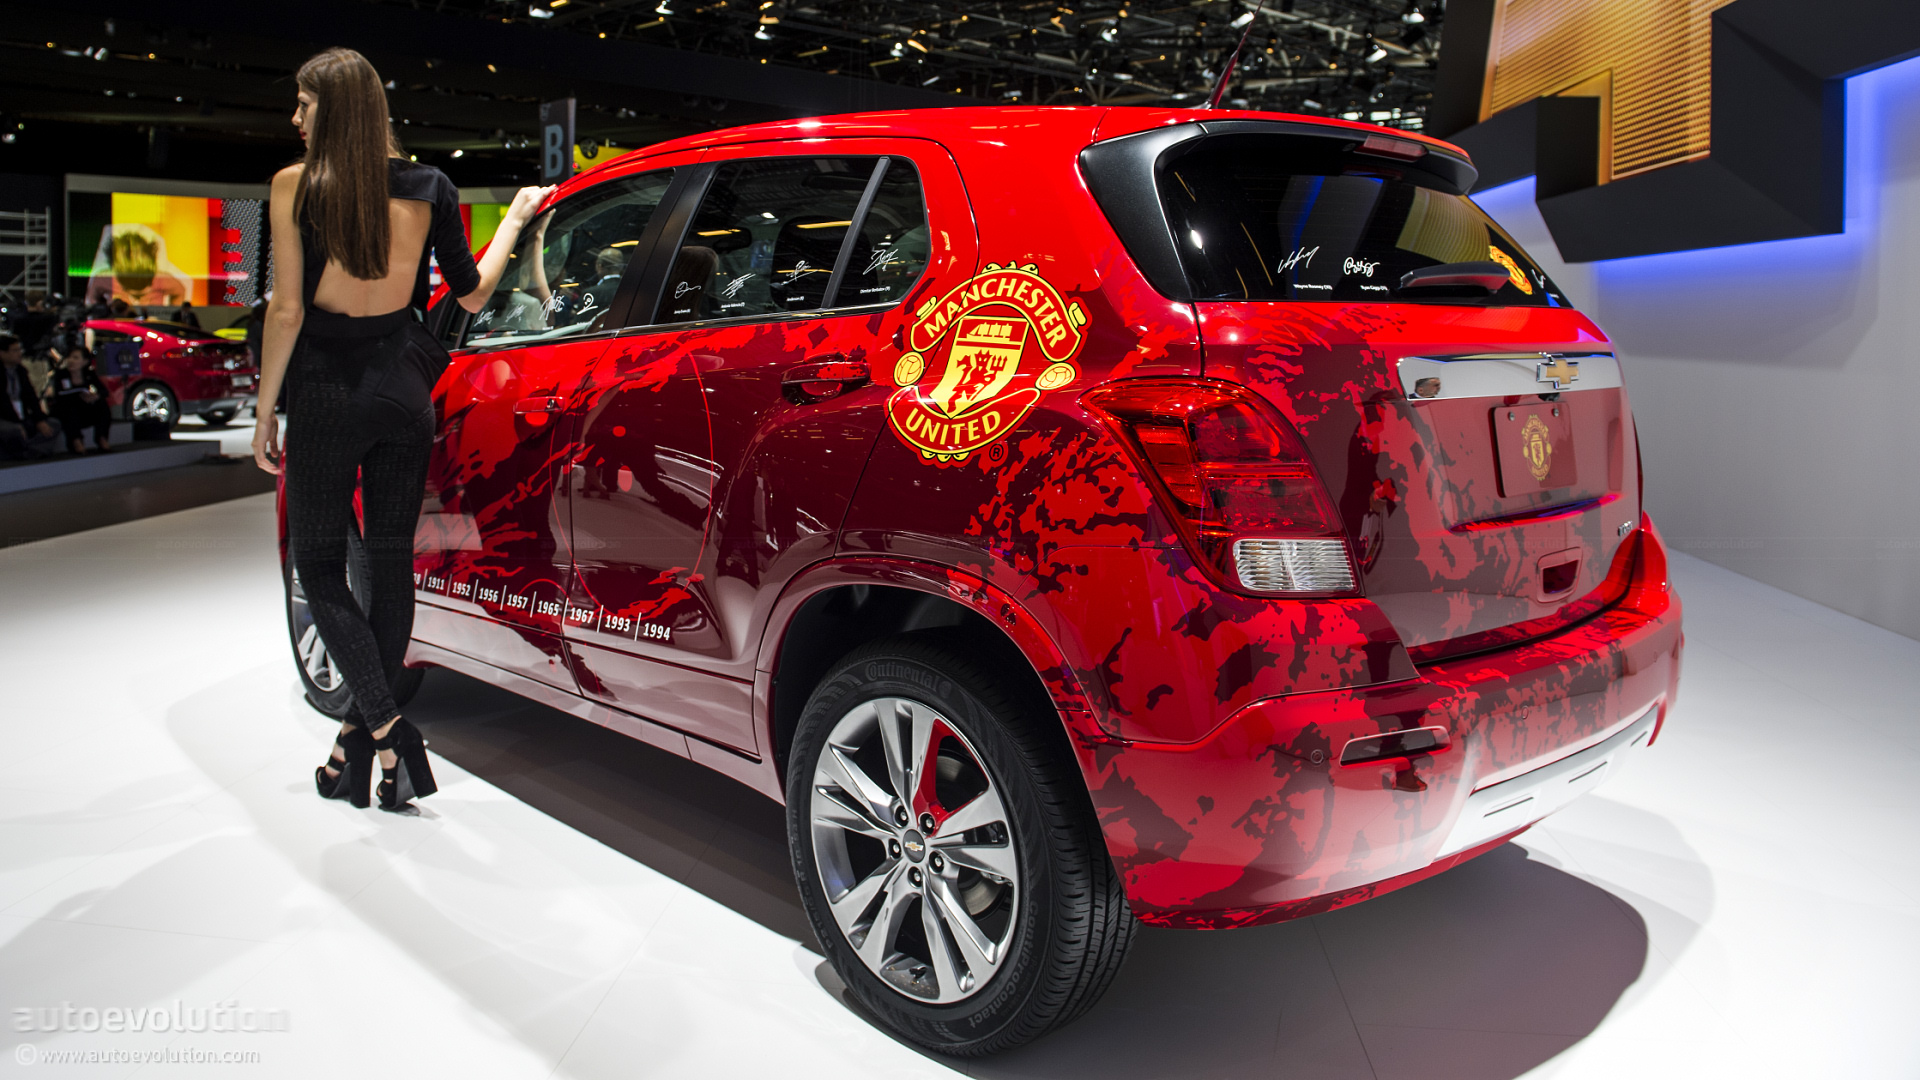 Manchester United Chevrolet Wallpaper Chevrolet Trax Photo Gallery